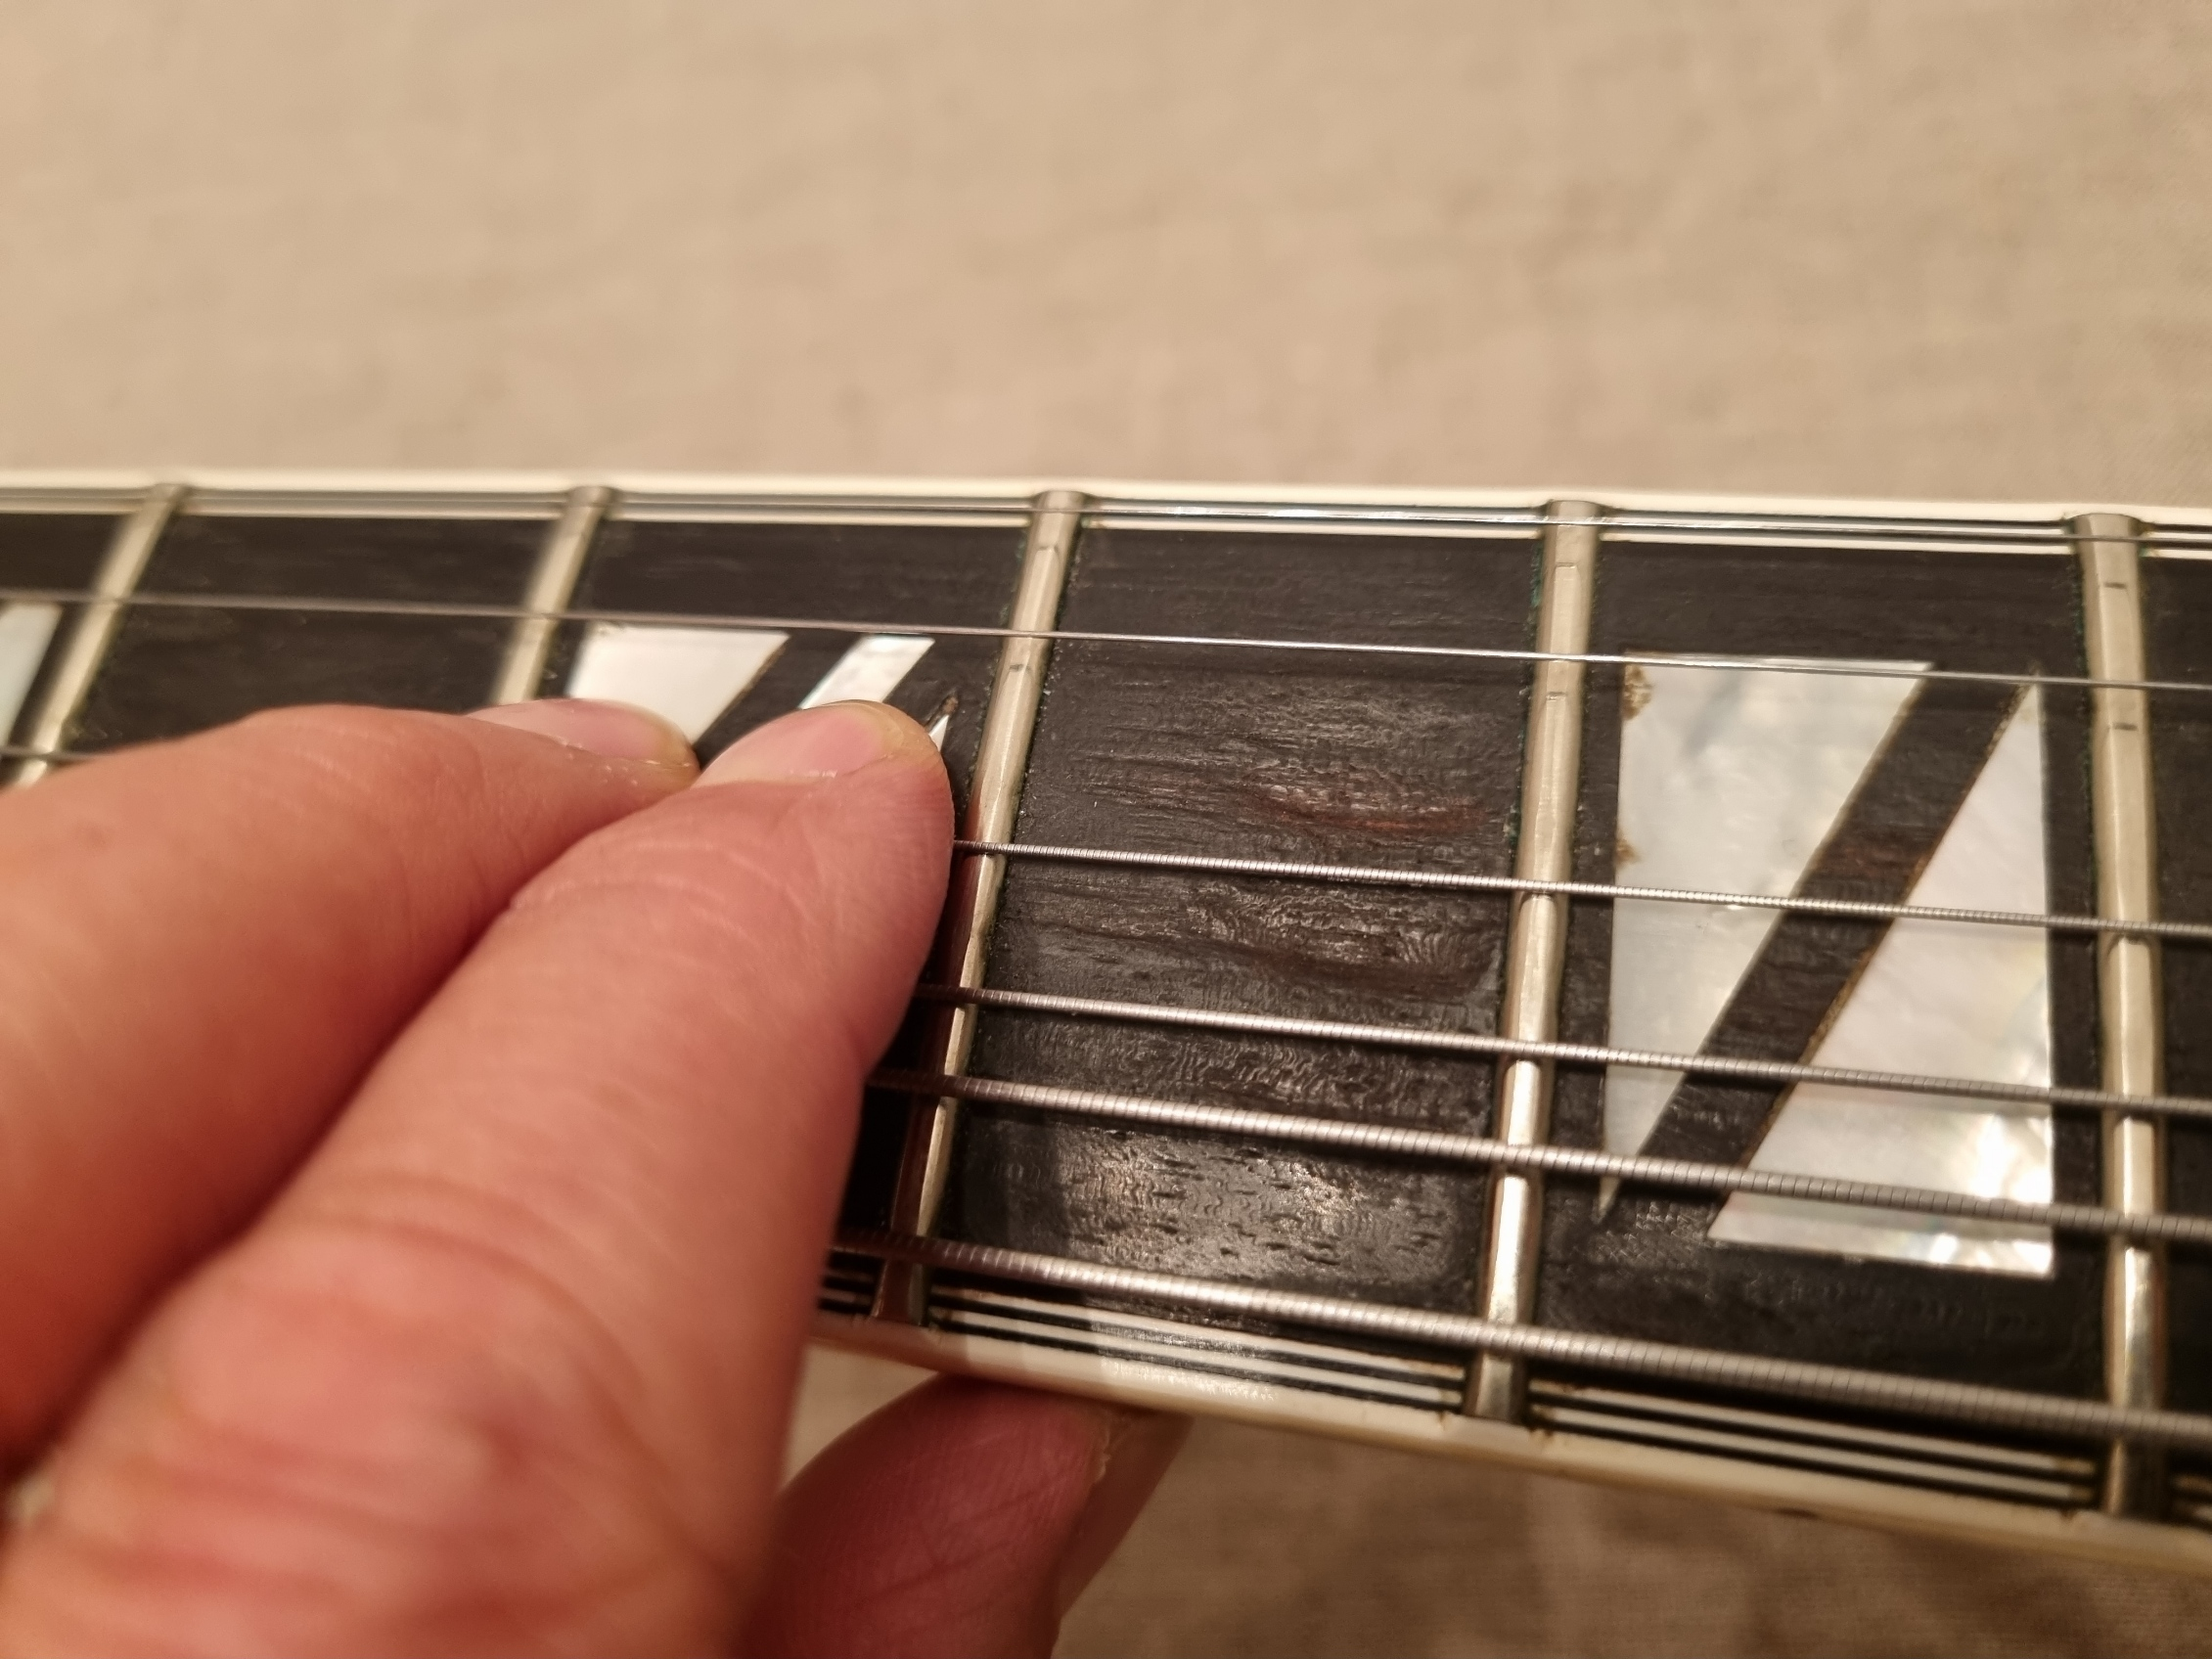 Fretboard pitting - What's the deal?-20210913_201428-jpg